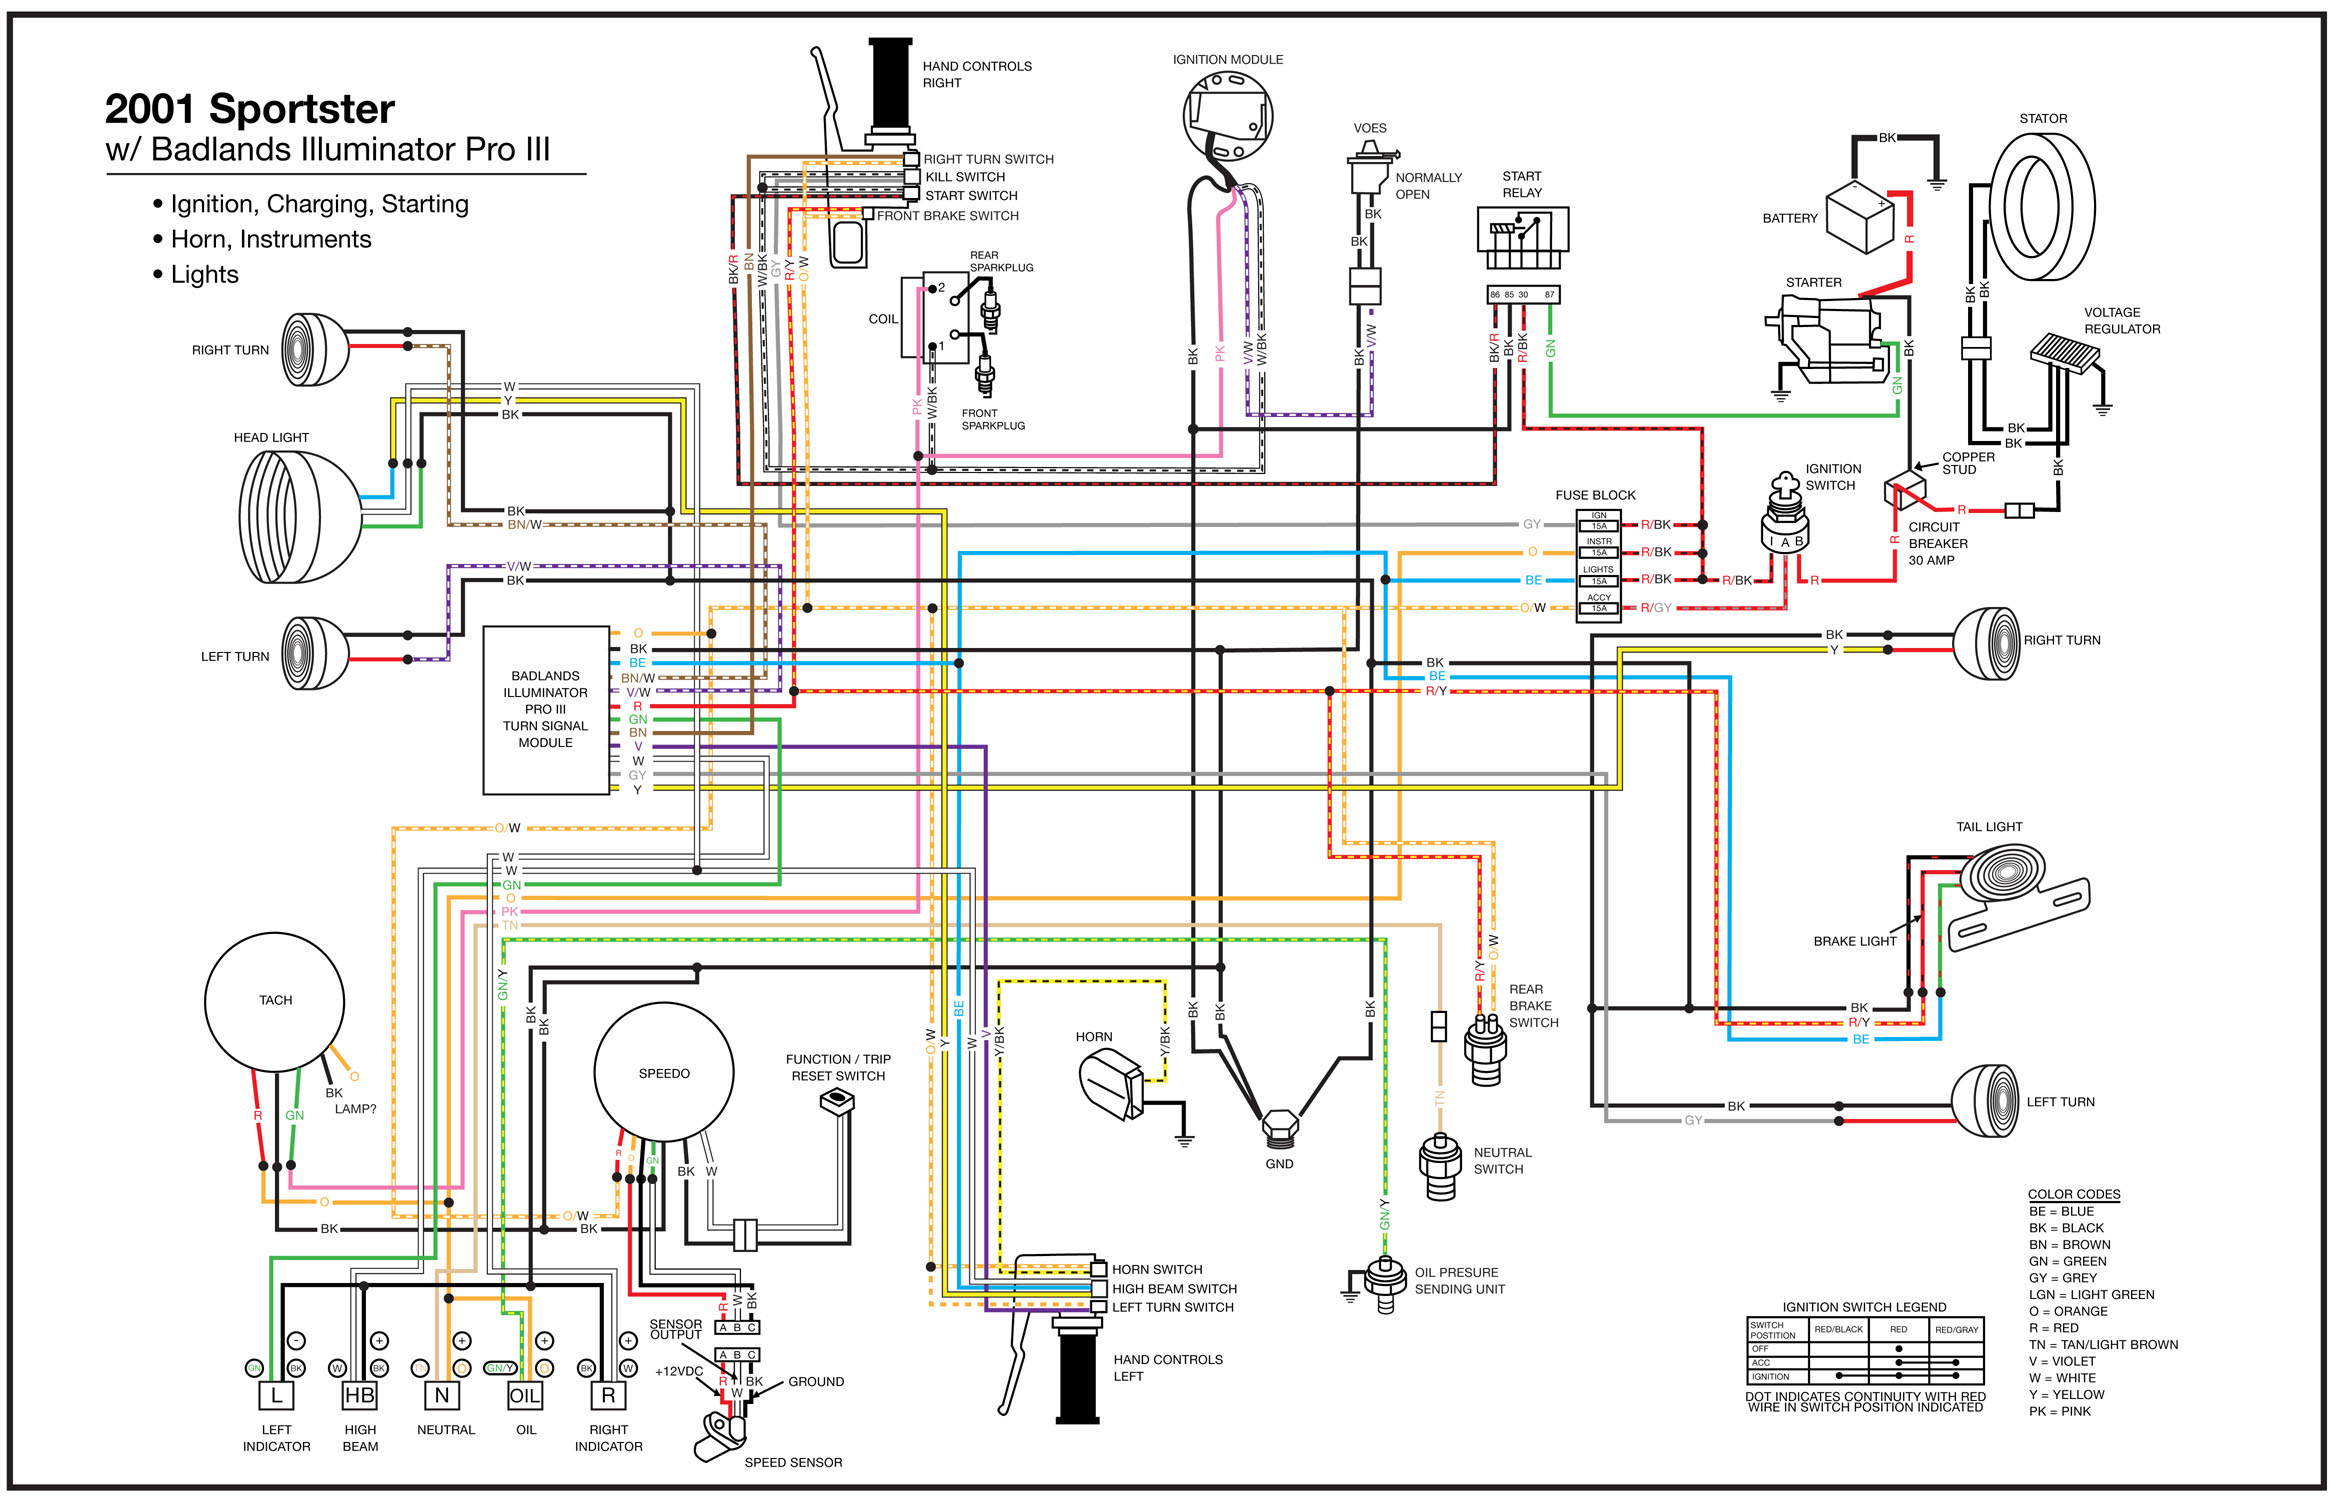 Sportster Badlands_Wiring_Diagram?resize=640%2C410&ssl=1 enchanting sportster wiring diagram images wiring schematic  at alyssarenee.co